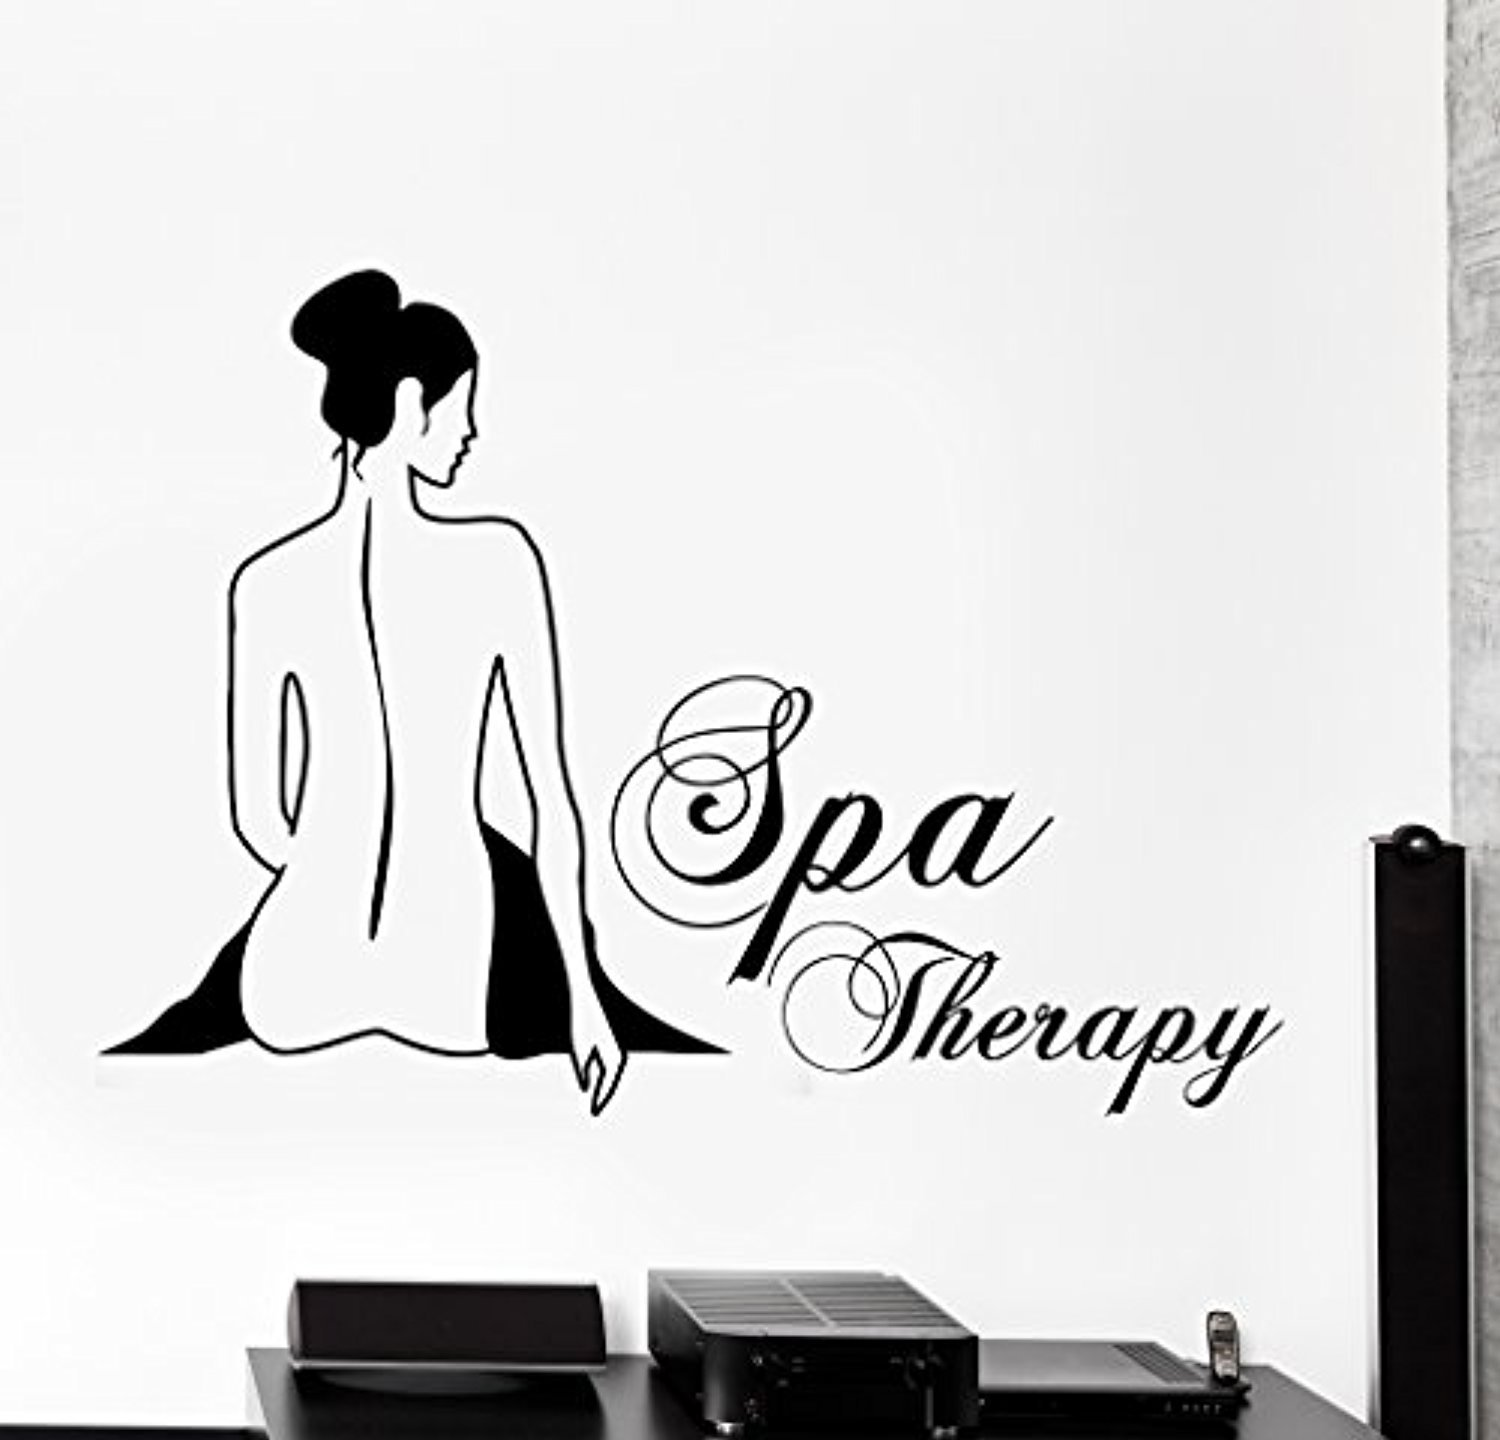 Large Wall Vinyl Decal Spa Therapy Beauty Salon Home Interior Decor z4094